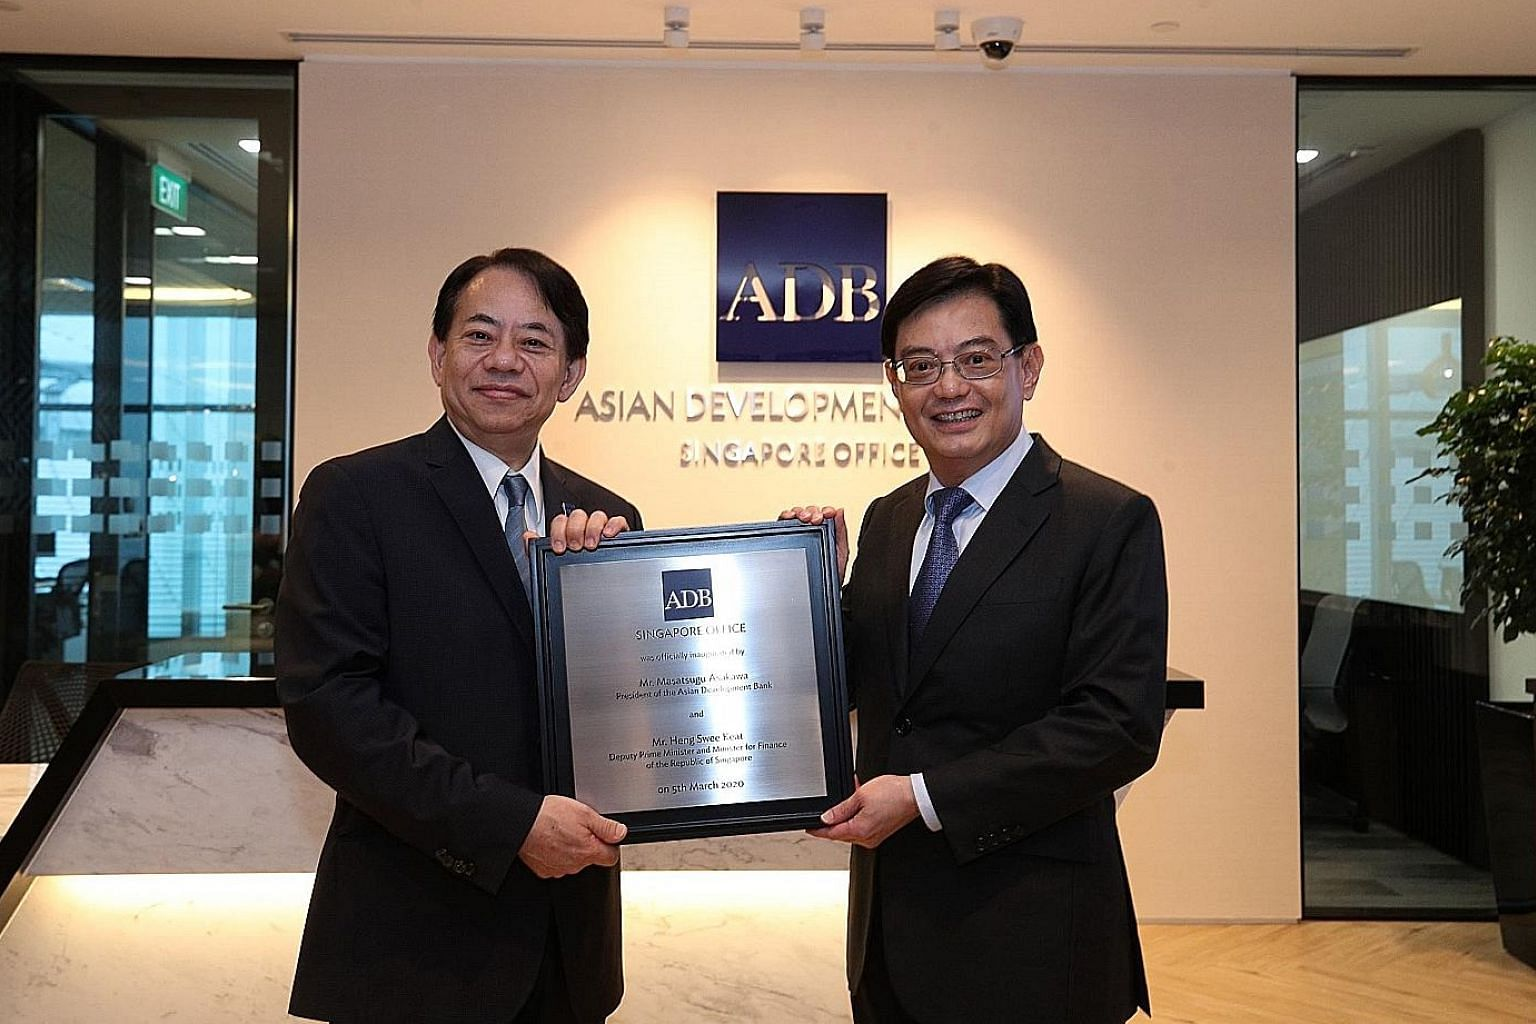 Asian Development Bank (ADB) president Masatsugu Asakawa (at left) and Deputy Prime Minister and Finance Minister Heng Swee Keat holding a plaque marking the official opening of the bank's new office in Marina Bay Financial Centre Tower 3 yesterday.